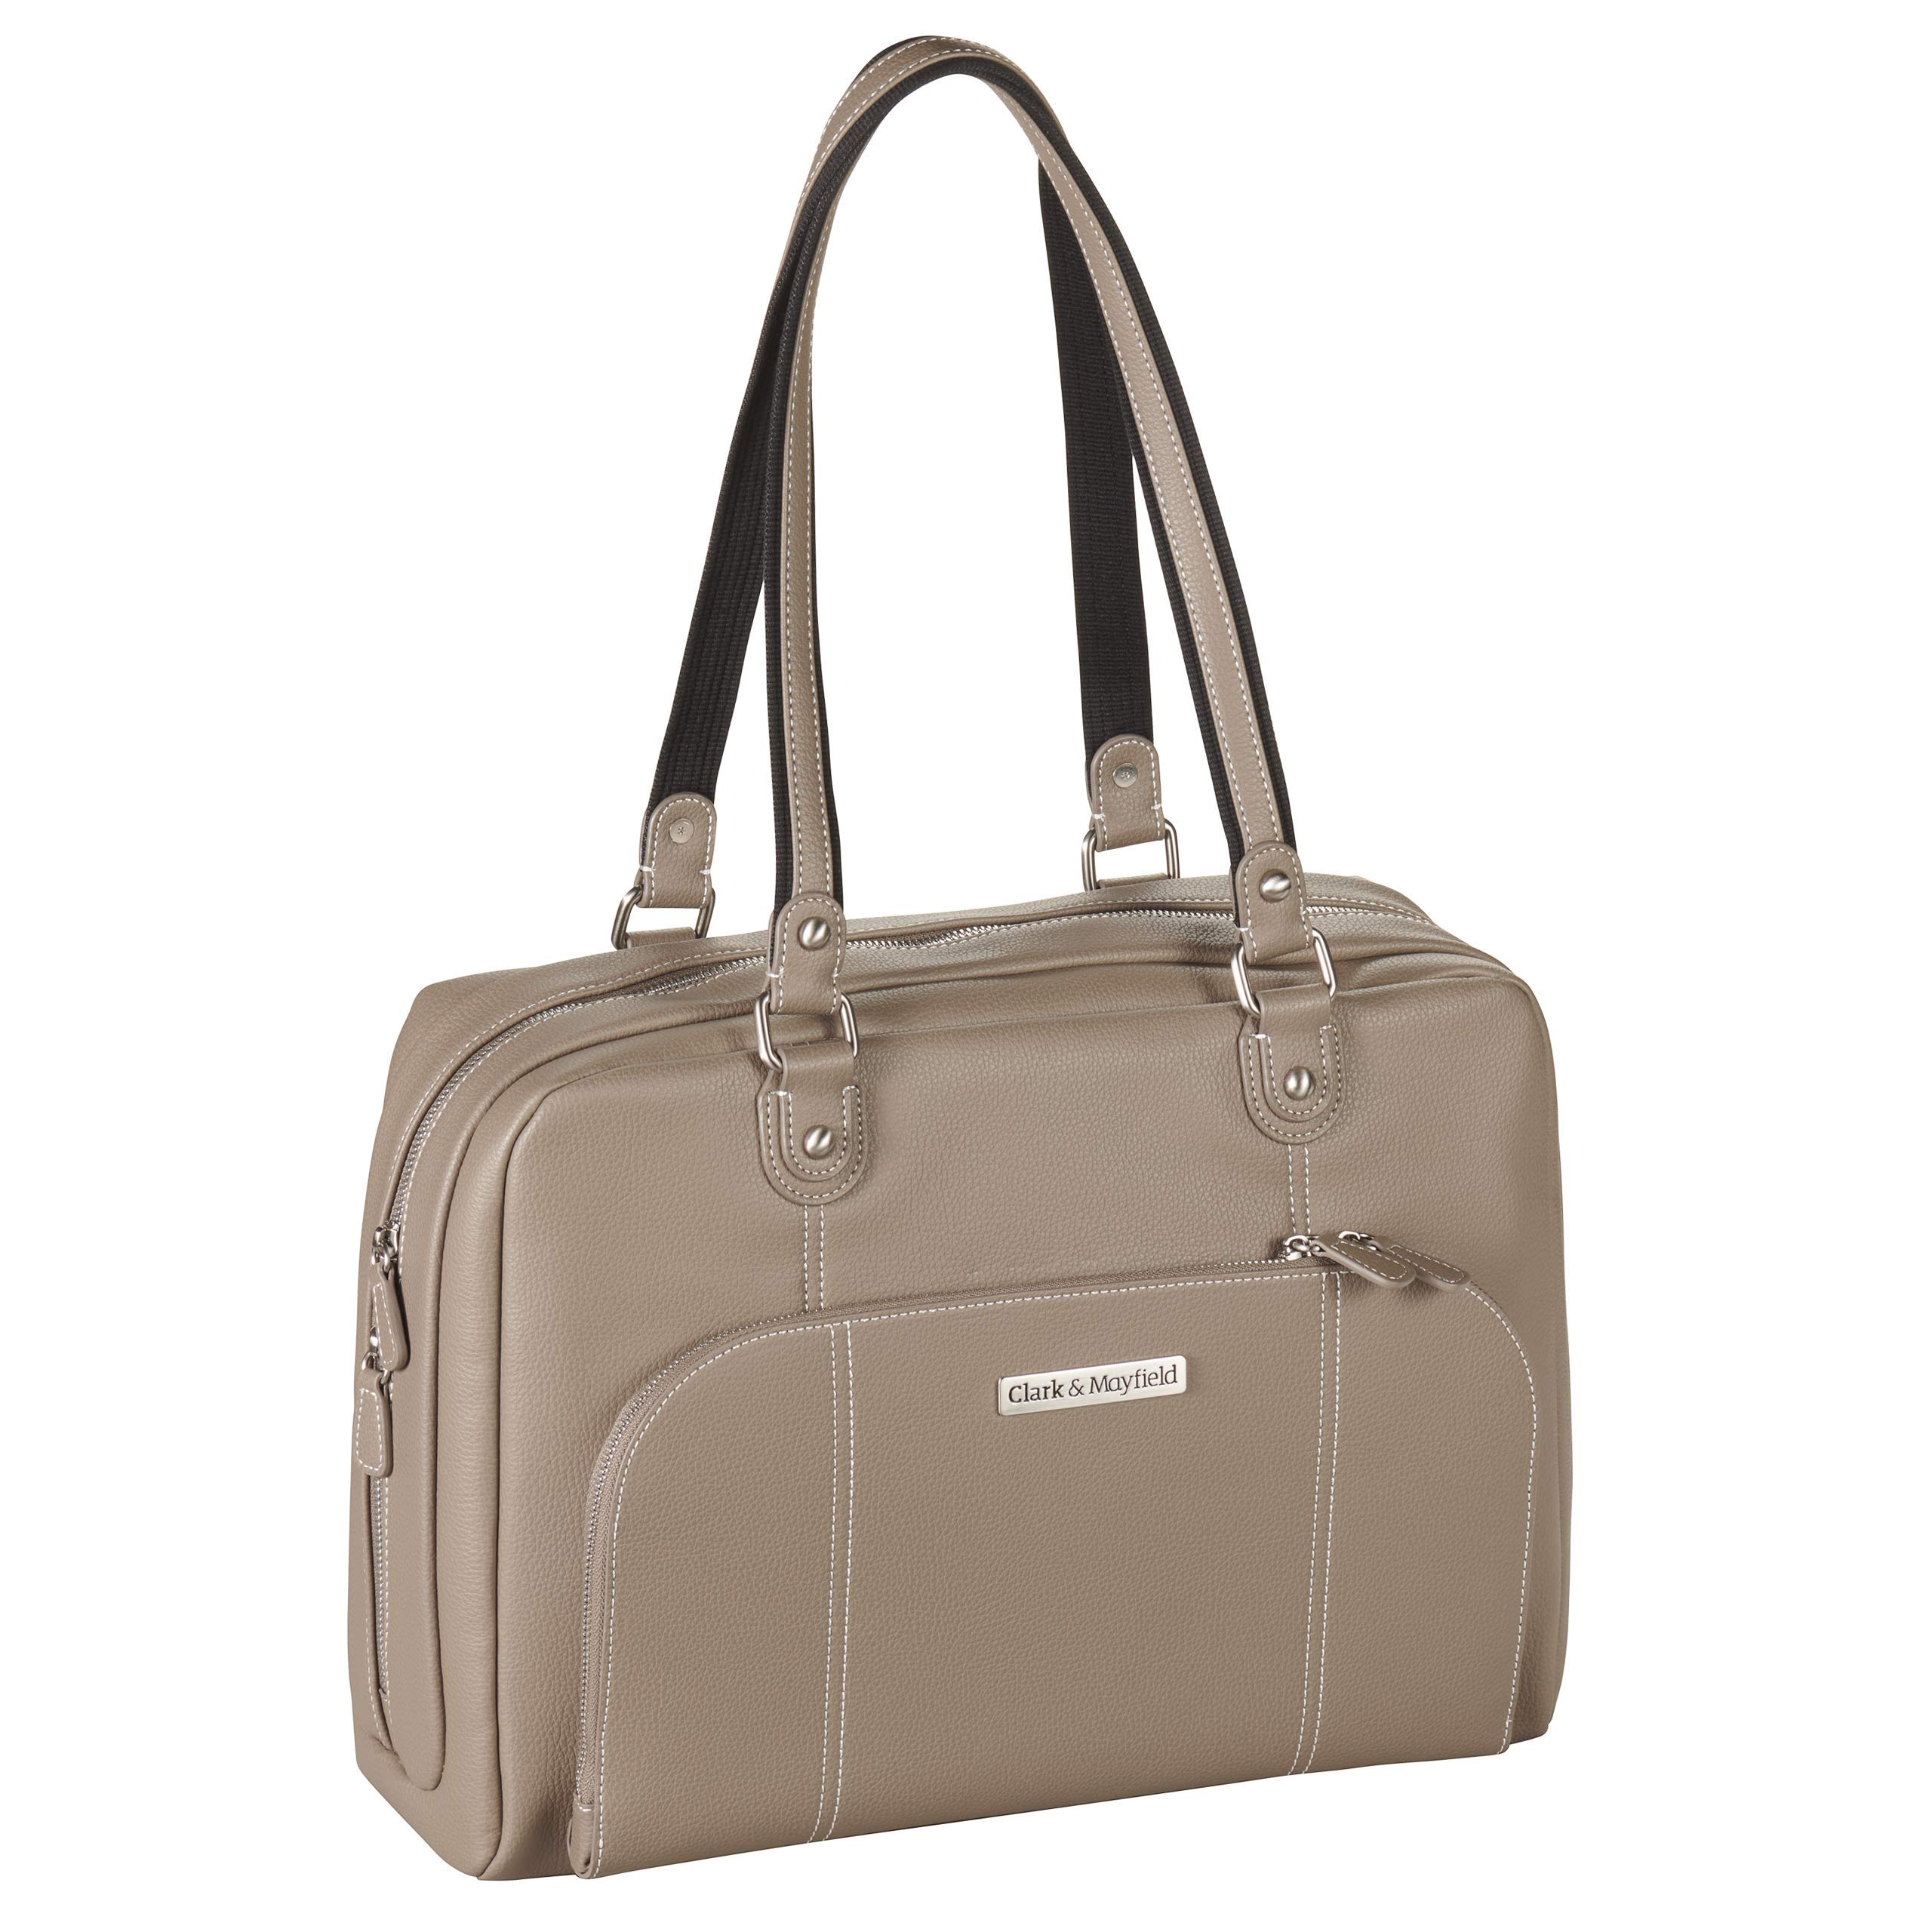 Clark & Mayfield Morrison 15'' Laptop Tote (Taupe) by Clark & Mayfield (Image #1)